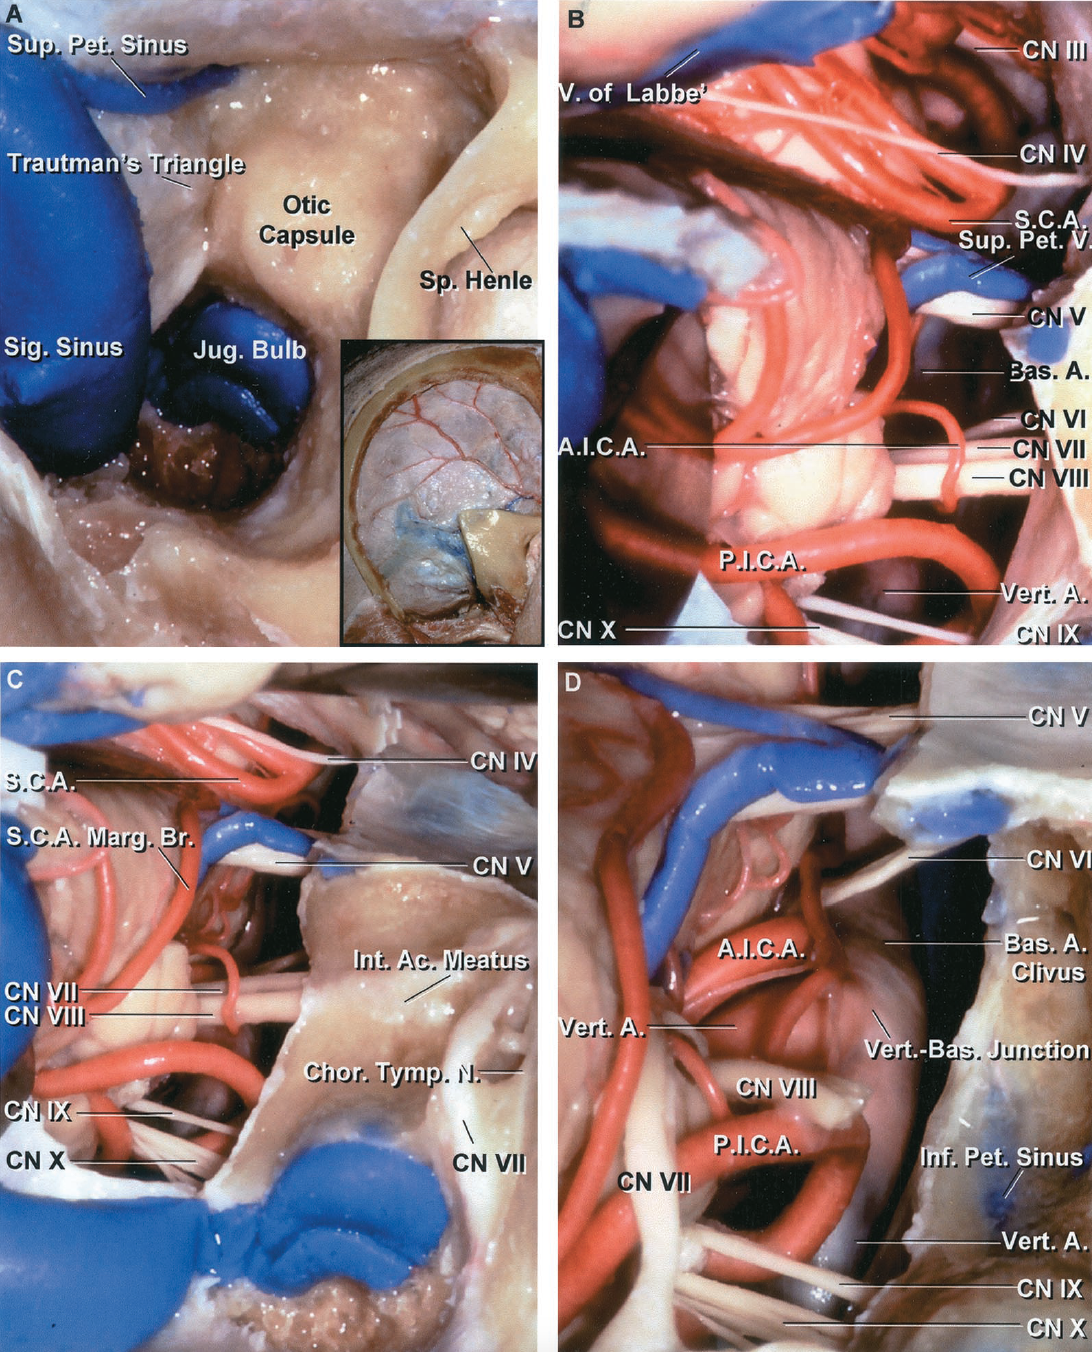 FIGURE 3.27. Combined supra- and infratentorial presigmoid approach. A, the inset shows the right temporo-occipital craniotomy and the mastoid exposure. The mastoidectomy has been completed and the otic capsule, composed of the dense cortical bone around the labyrinth, has been exposed. The tympanic segment of the facial nerve and the lateral canal are situated deep to the spine of Henle. Trautmann's triangle, the patch of dura in front of the sigmoid sinus, faces the cerebellopontine angle. B, the presigmoid dura has been opened and the superior petrosal sinus and tentorium divided, with care taken to preserve both the vein of Labbé that joins the transverse sinus and the trochlear nerve that enters the anterior edge of the tentorium. The abducens and facial nerves are exposed medially to the vestibulocochlear nerve. The posteroinferior cerebellar artery courses in the lower margin of the exposure with the glossopharyngeal and vagus nerves. The superior cerebellar artery passes below the oculomotor and trochlear nerves and above the trigeminal nerve. C, the labyrinthectomy has been completed to expose the internal acoustic meatus. A marginal branch of the superior cerebellar artery loops downward on the cerebellum. D, the dura lining the meatus has been opened and the facial nerve has been transposed posteriorly. The cochlear nerve has been divided and bone removed to expose and remove the cochlea. The transcochlear exposure, completed by removing the cochlea and surrounding petrous apex, provides access to the front of the brainstem and vertebrobasilar junction, but at the cost of loss of hearing caused by the labyrinthectomy and almost certain temporary or permanent facial weakness associated with the transposition of the facial nerve. A., artery; Ac., acoustic; A.I.C.A., anteroinferior cerebellar artery; Bas., basilar; Br., branch; Chor., chorda; CN, cranial nerve; Inf., inferior; Int., internal; Jug., jugular; Marg., marginal; N., nerve; P.I.C.A., posteroinferi